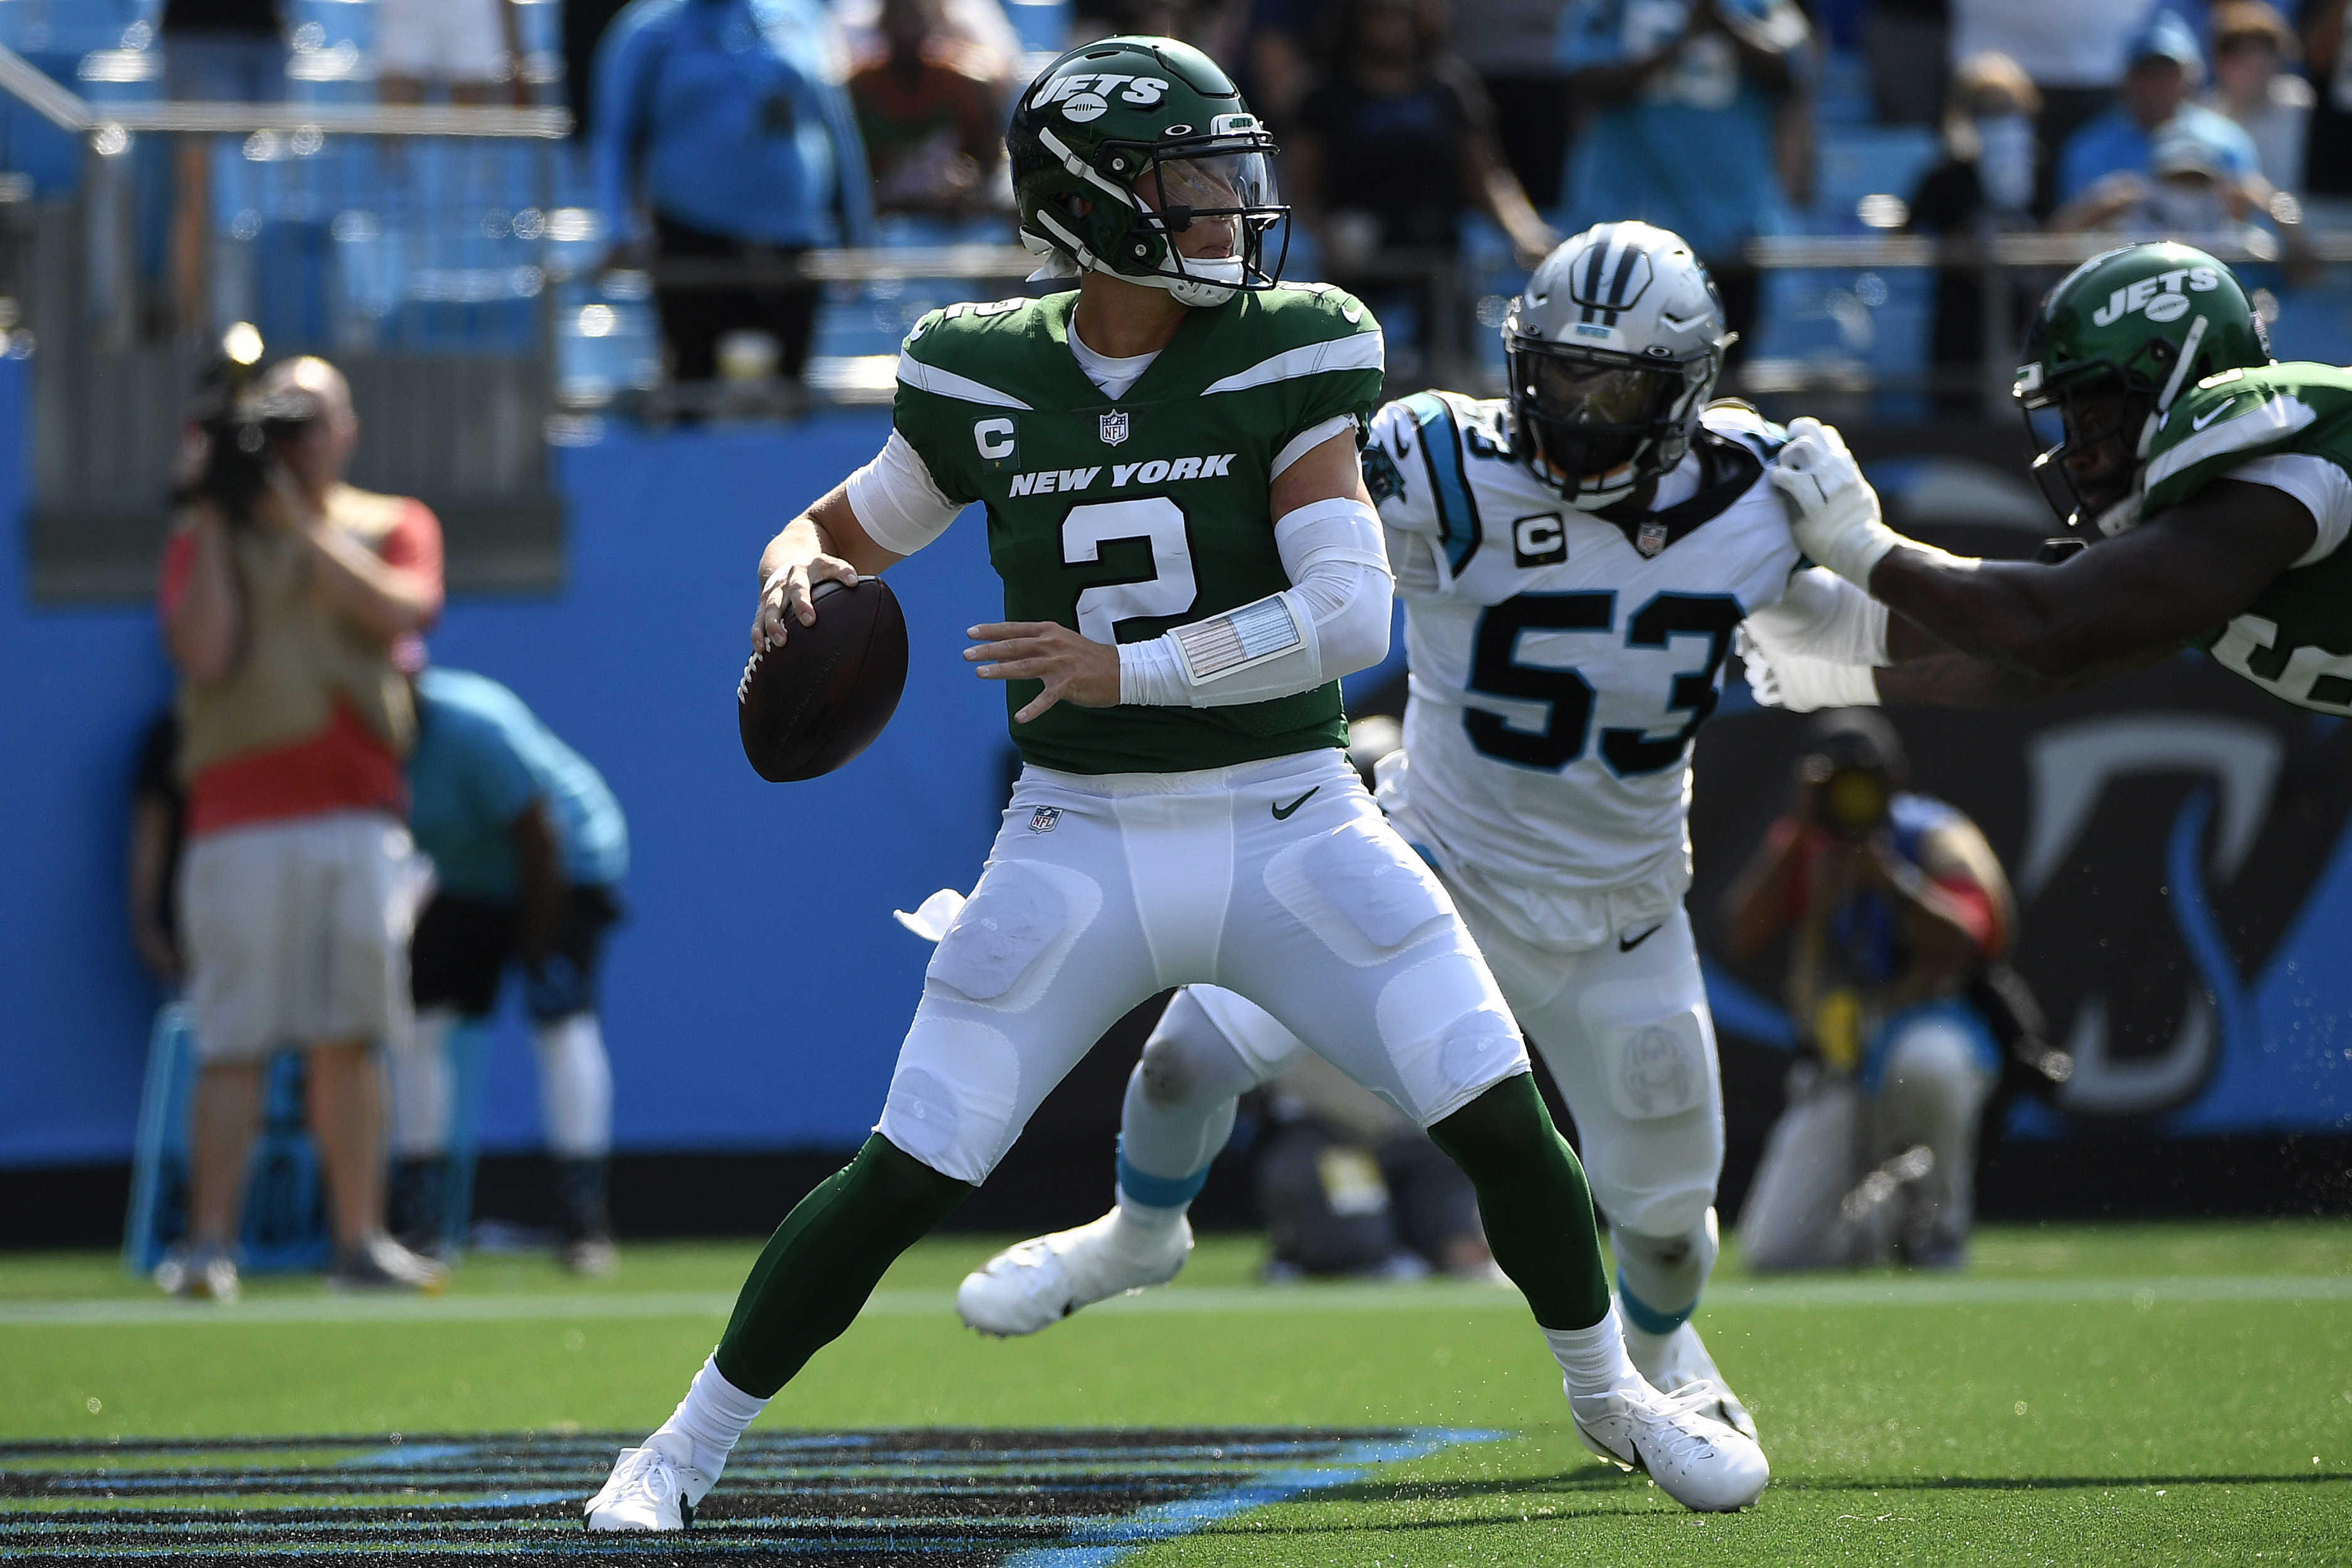 Jets QB Wilson Shows Toughness, 'Moxie' in Loss to Panthers